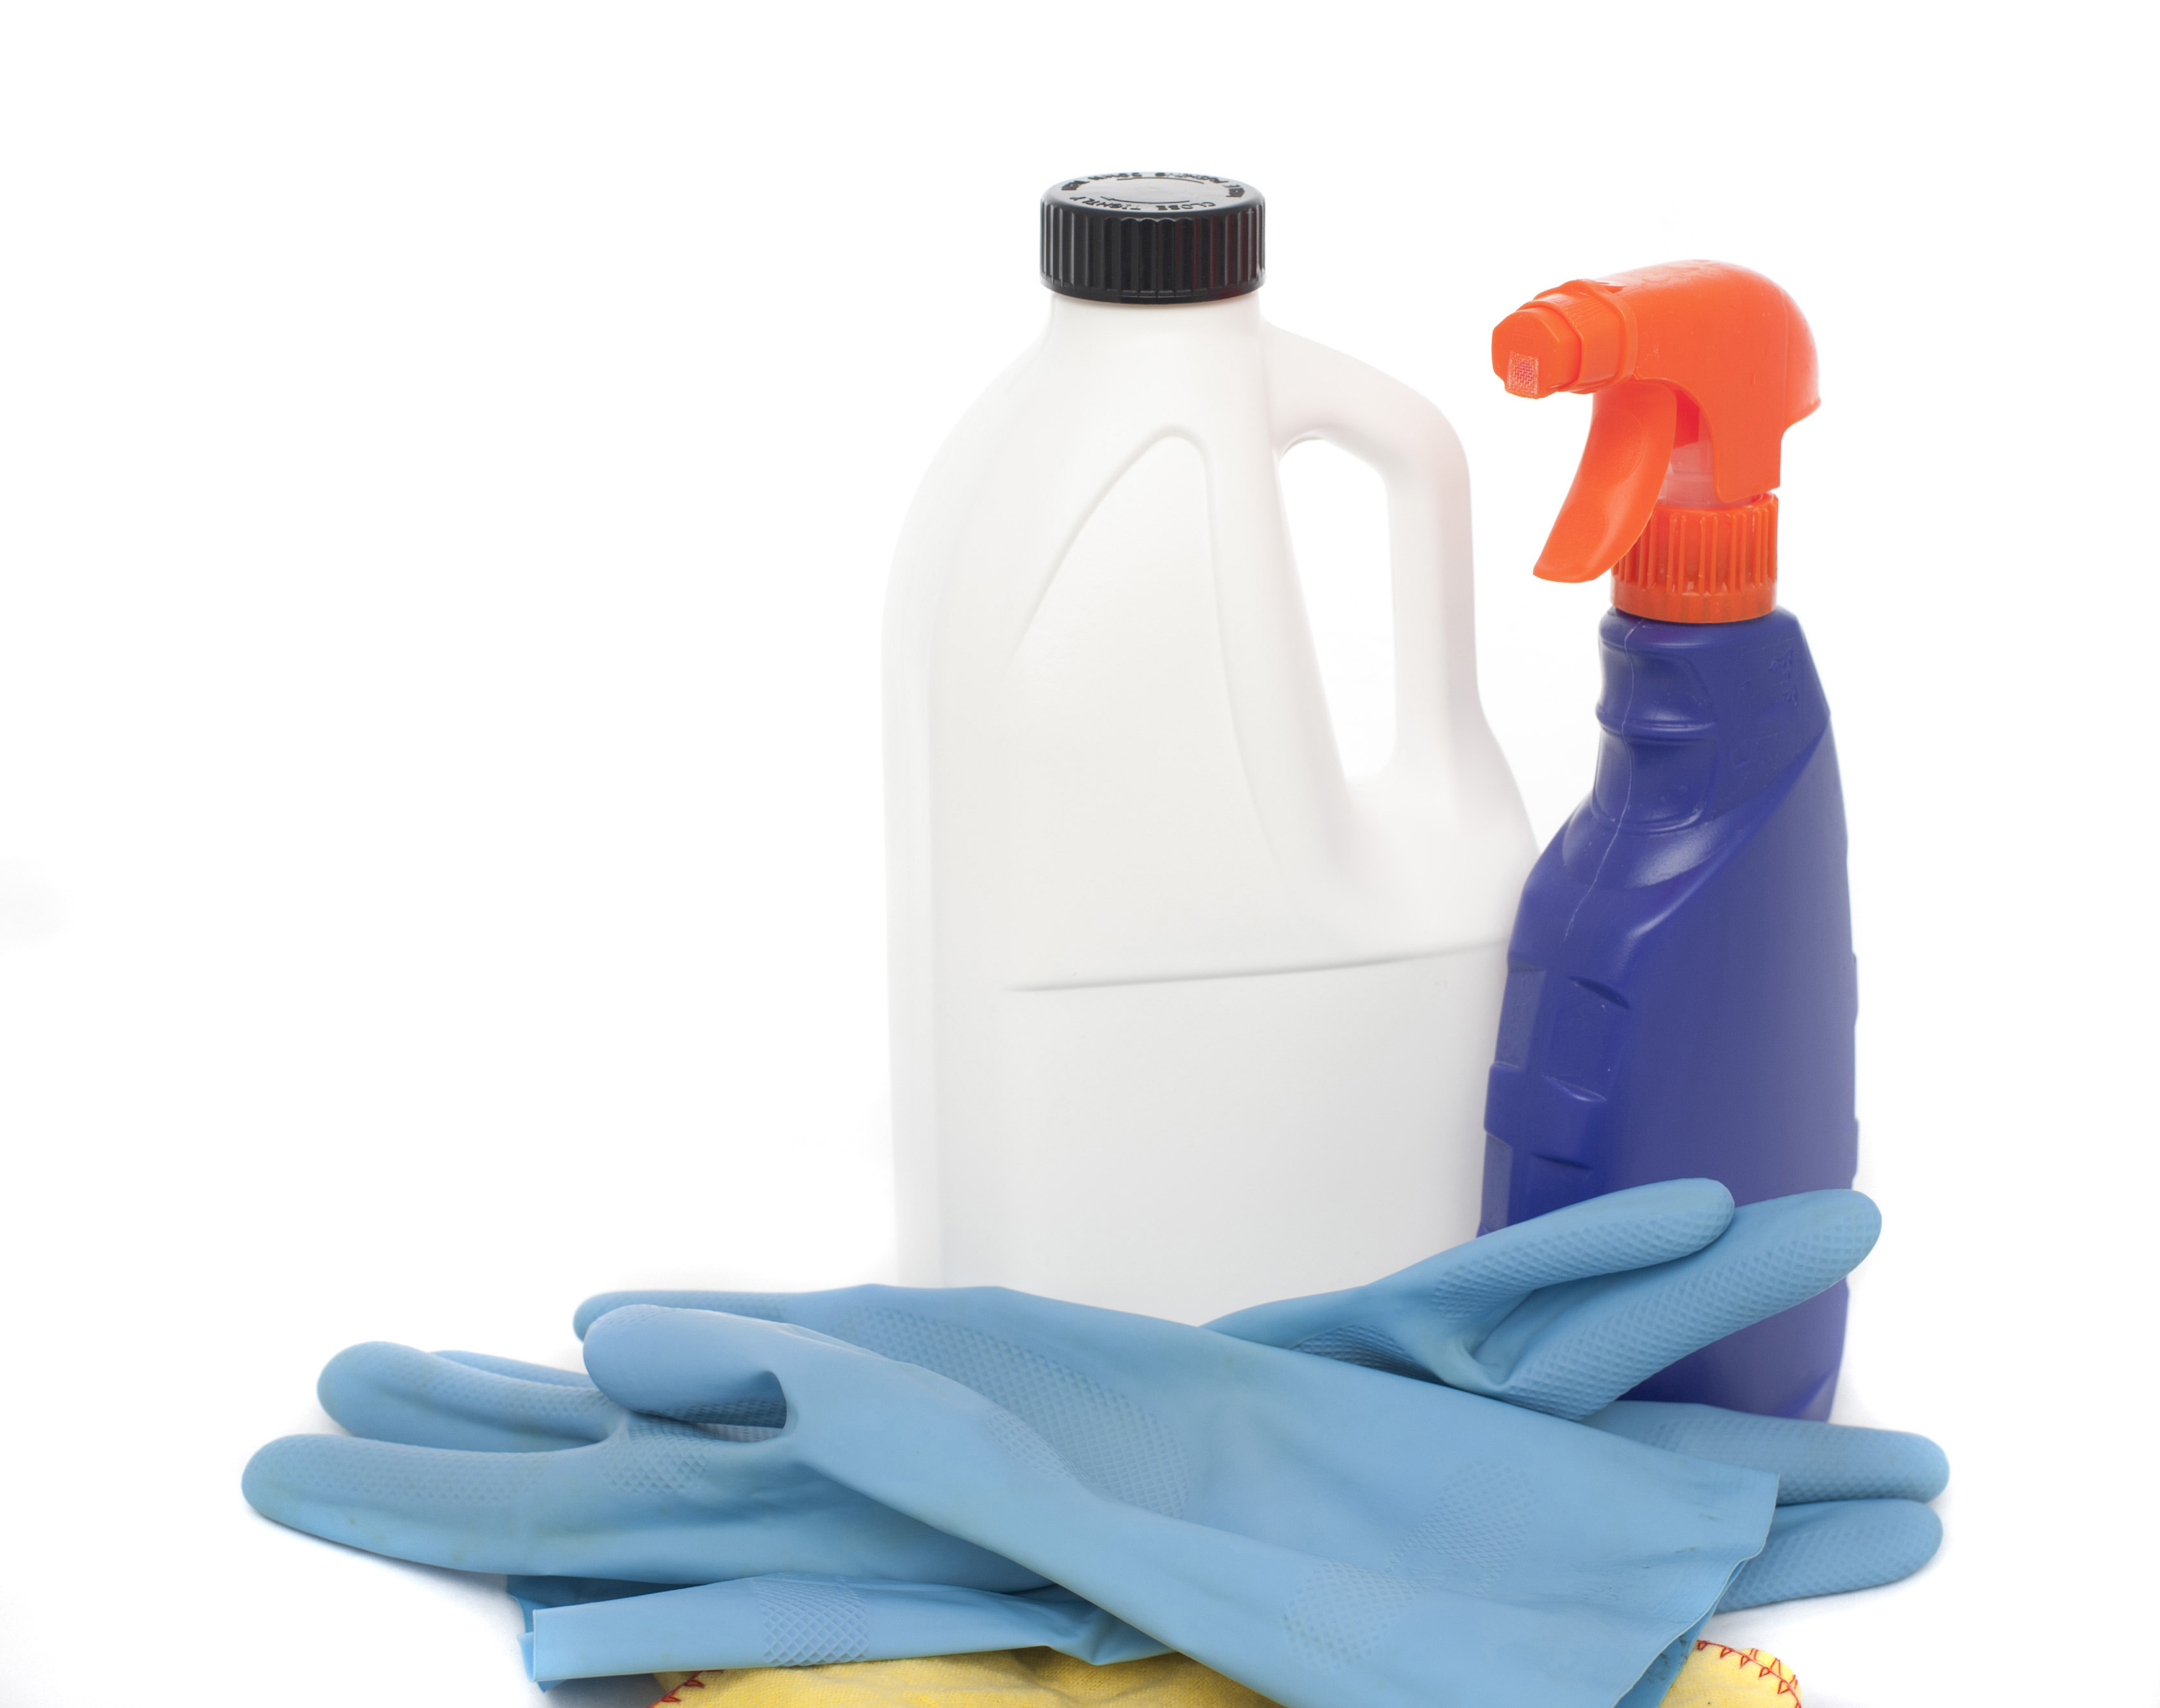 Free Stock Photo 6902 Household Cleaning Products